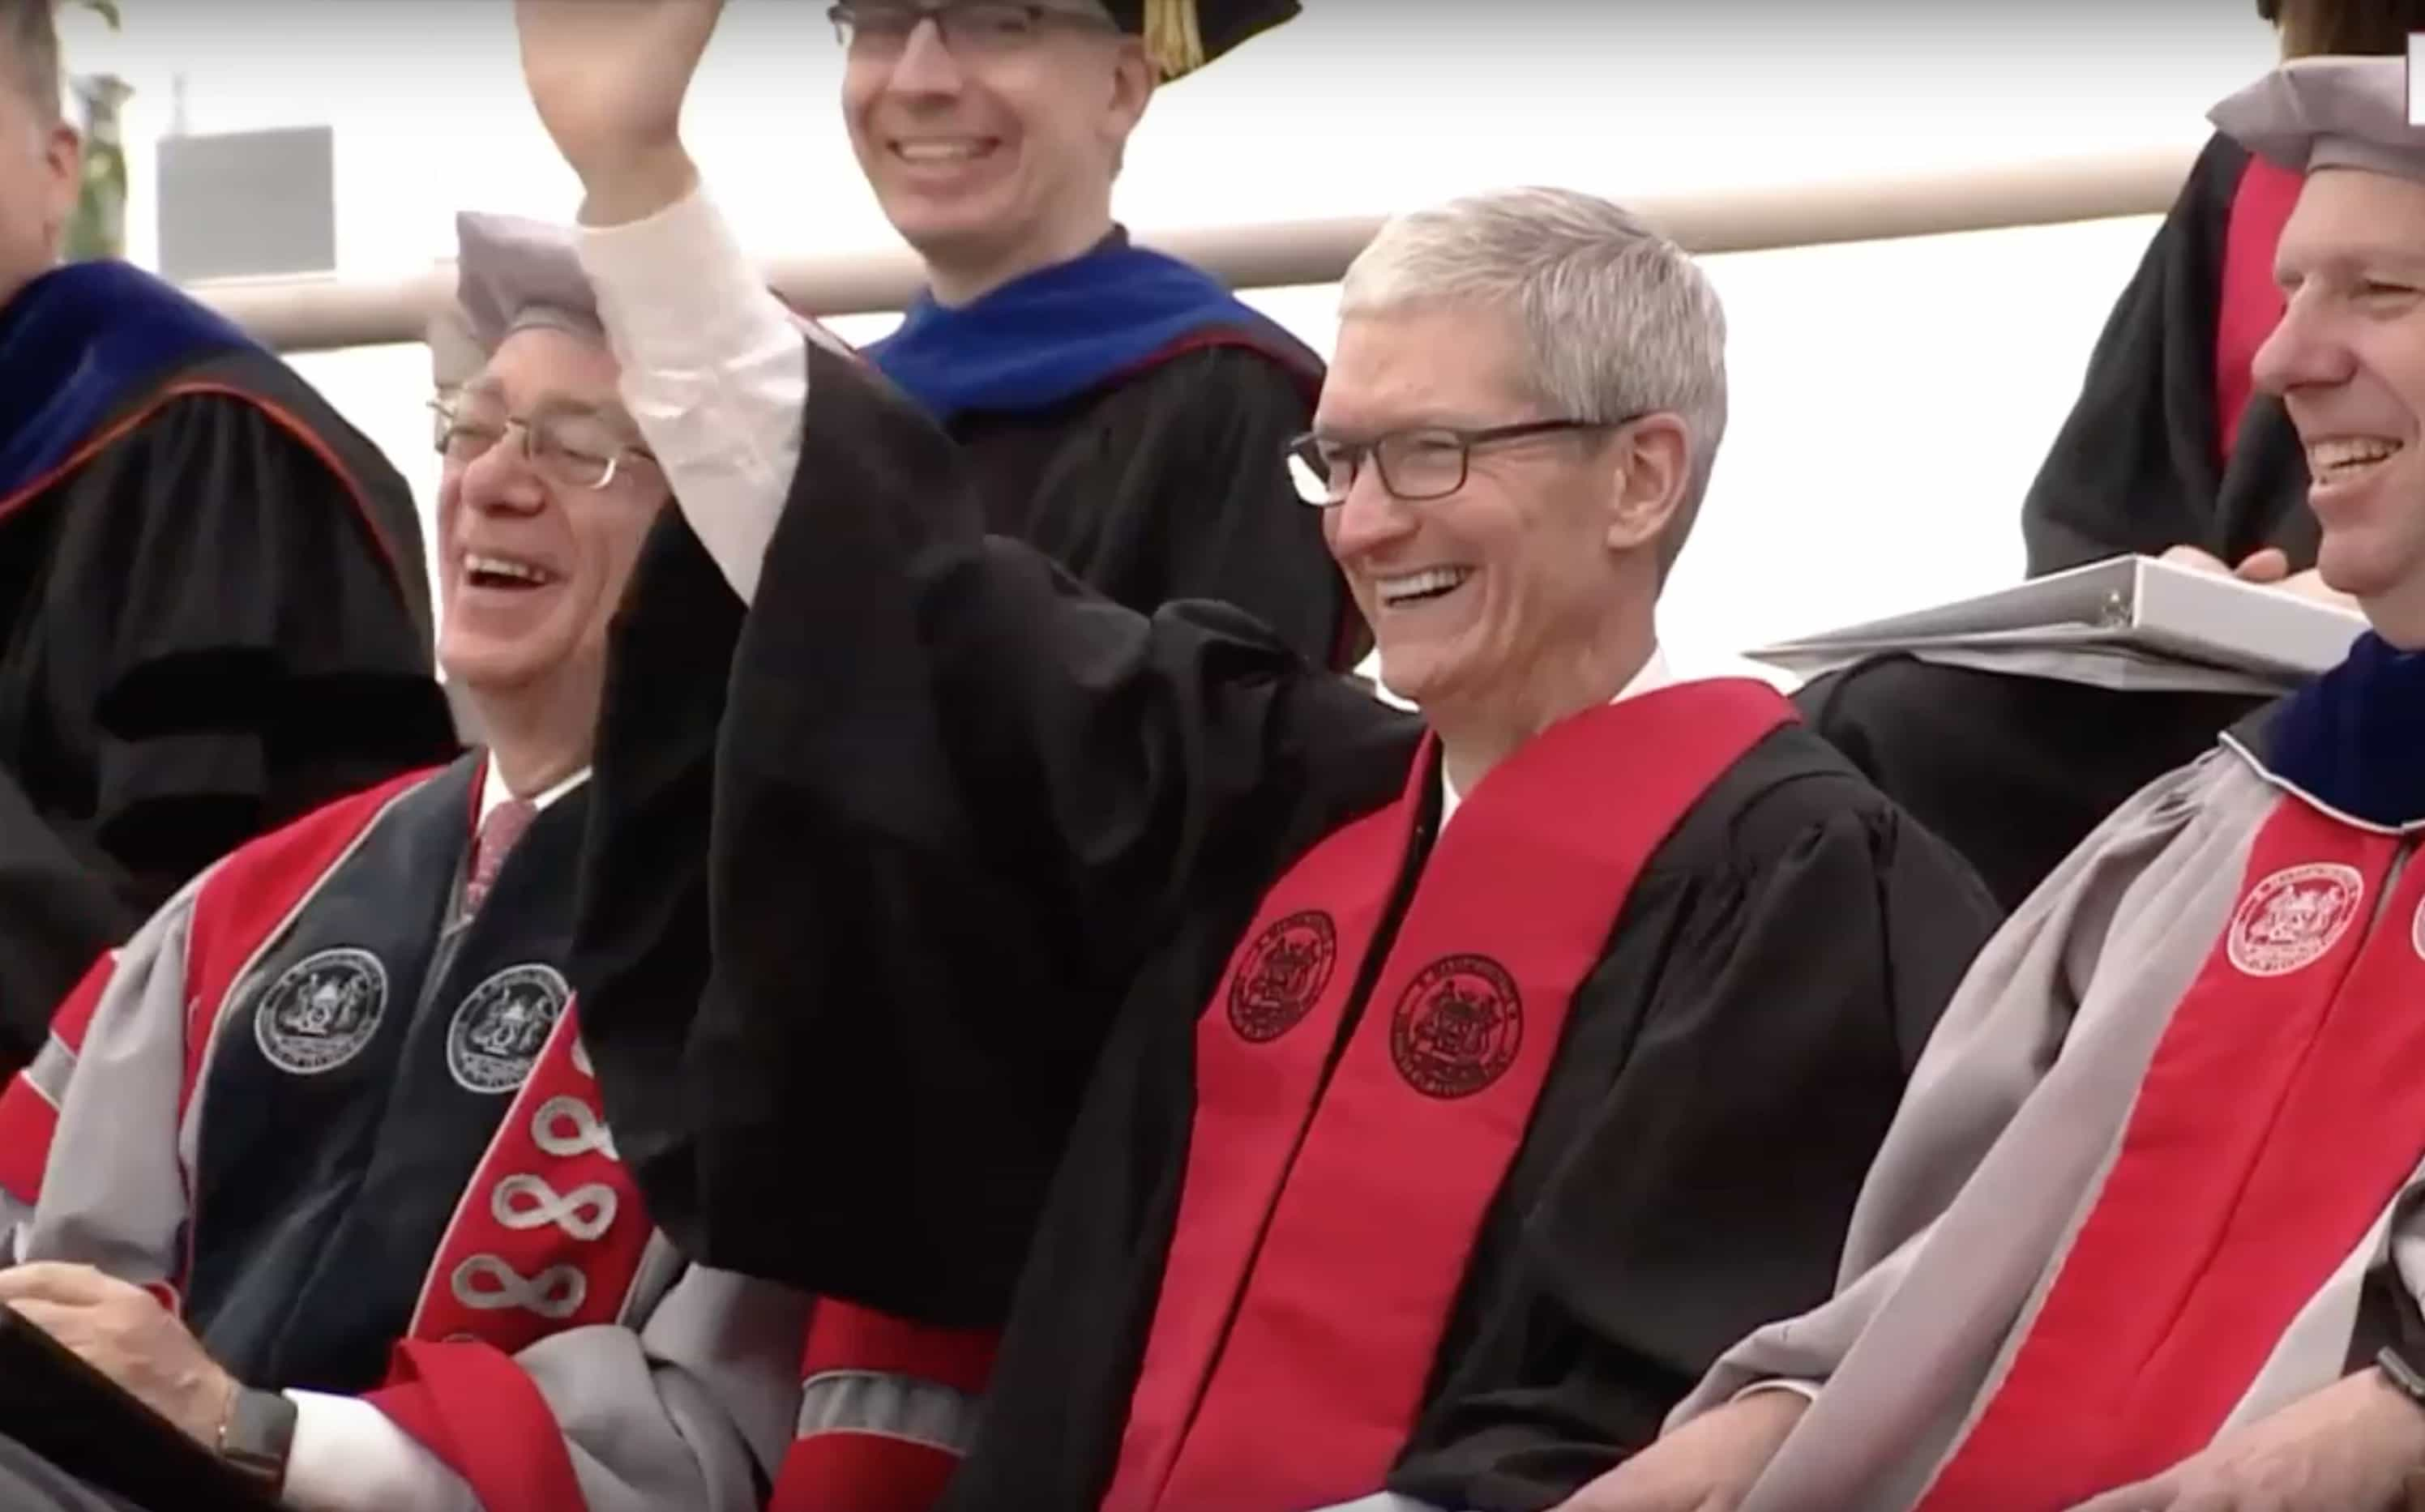 Apple CEO Tim Cook before giving the 2017 MIT Commencement Speech.